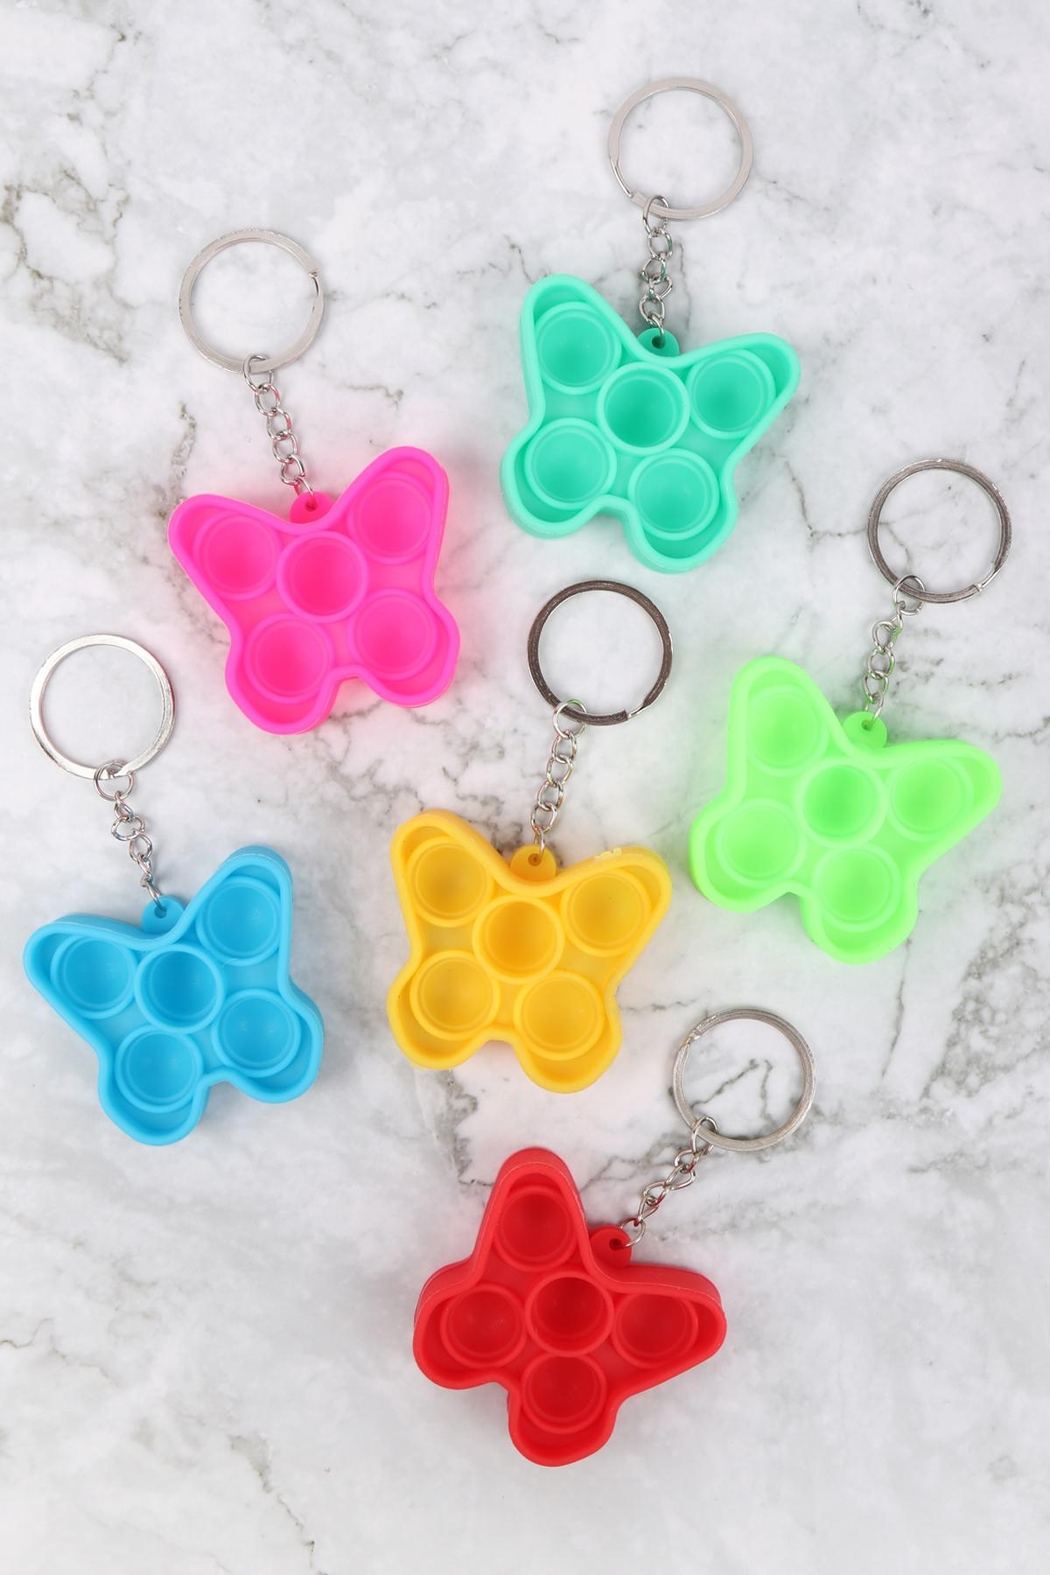 Riah Fashion Pop-Fidget-Sensory-And-Stress-Reliever-Butterfly Multicolor-Toy-Keychain - Front Full Image